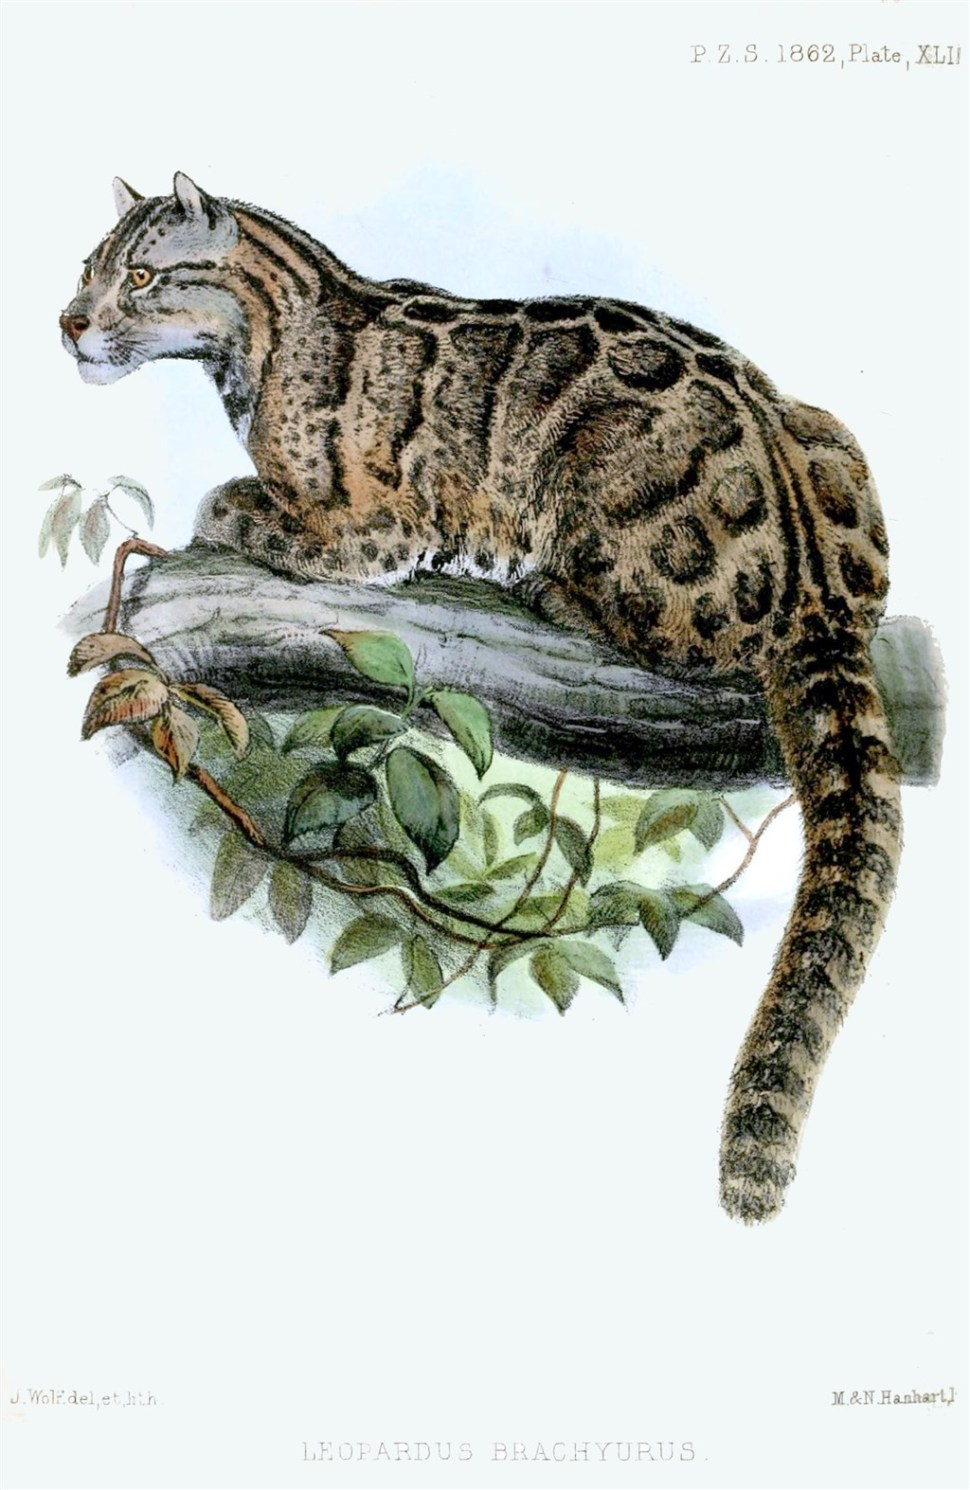 Un dibujo del leopardo nublado de Taiwan (Proceedings of the Zoological Society of London 1862)